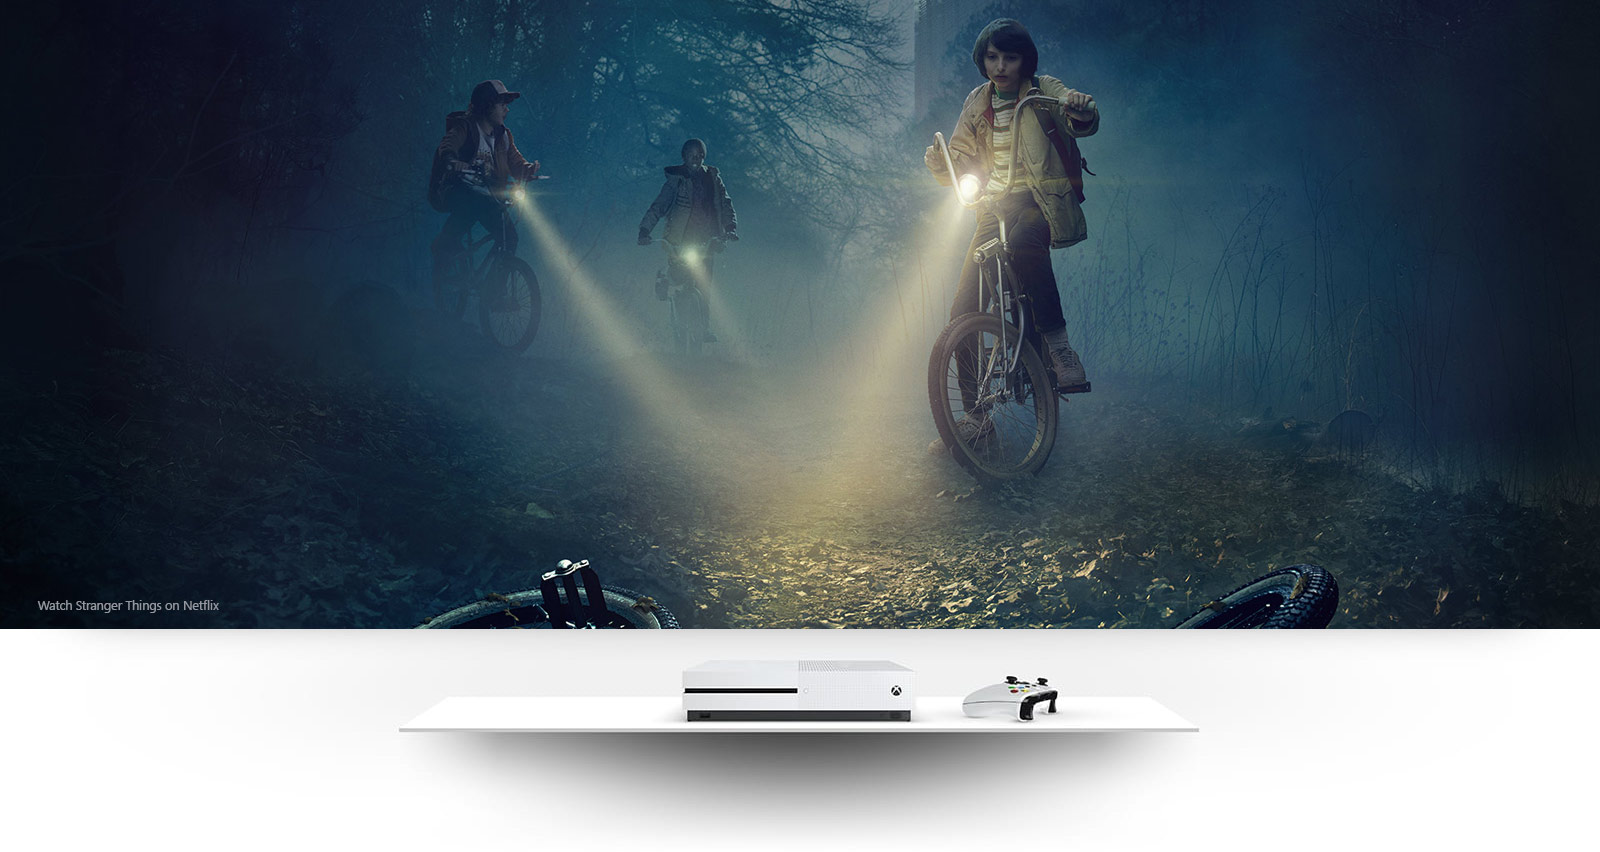 Xbox One S with an image of Stranger Things kids on bikes